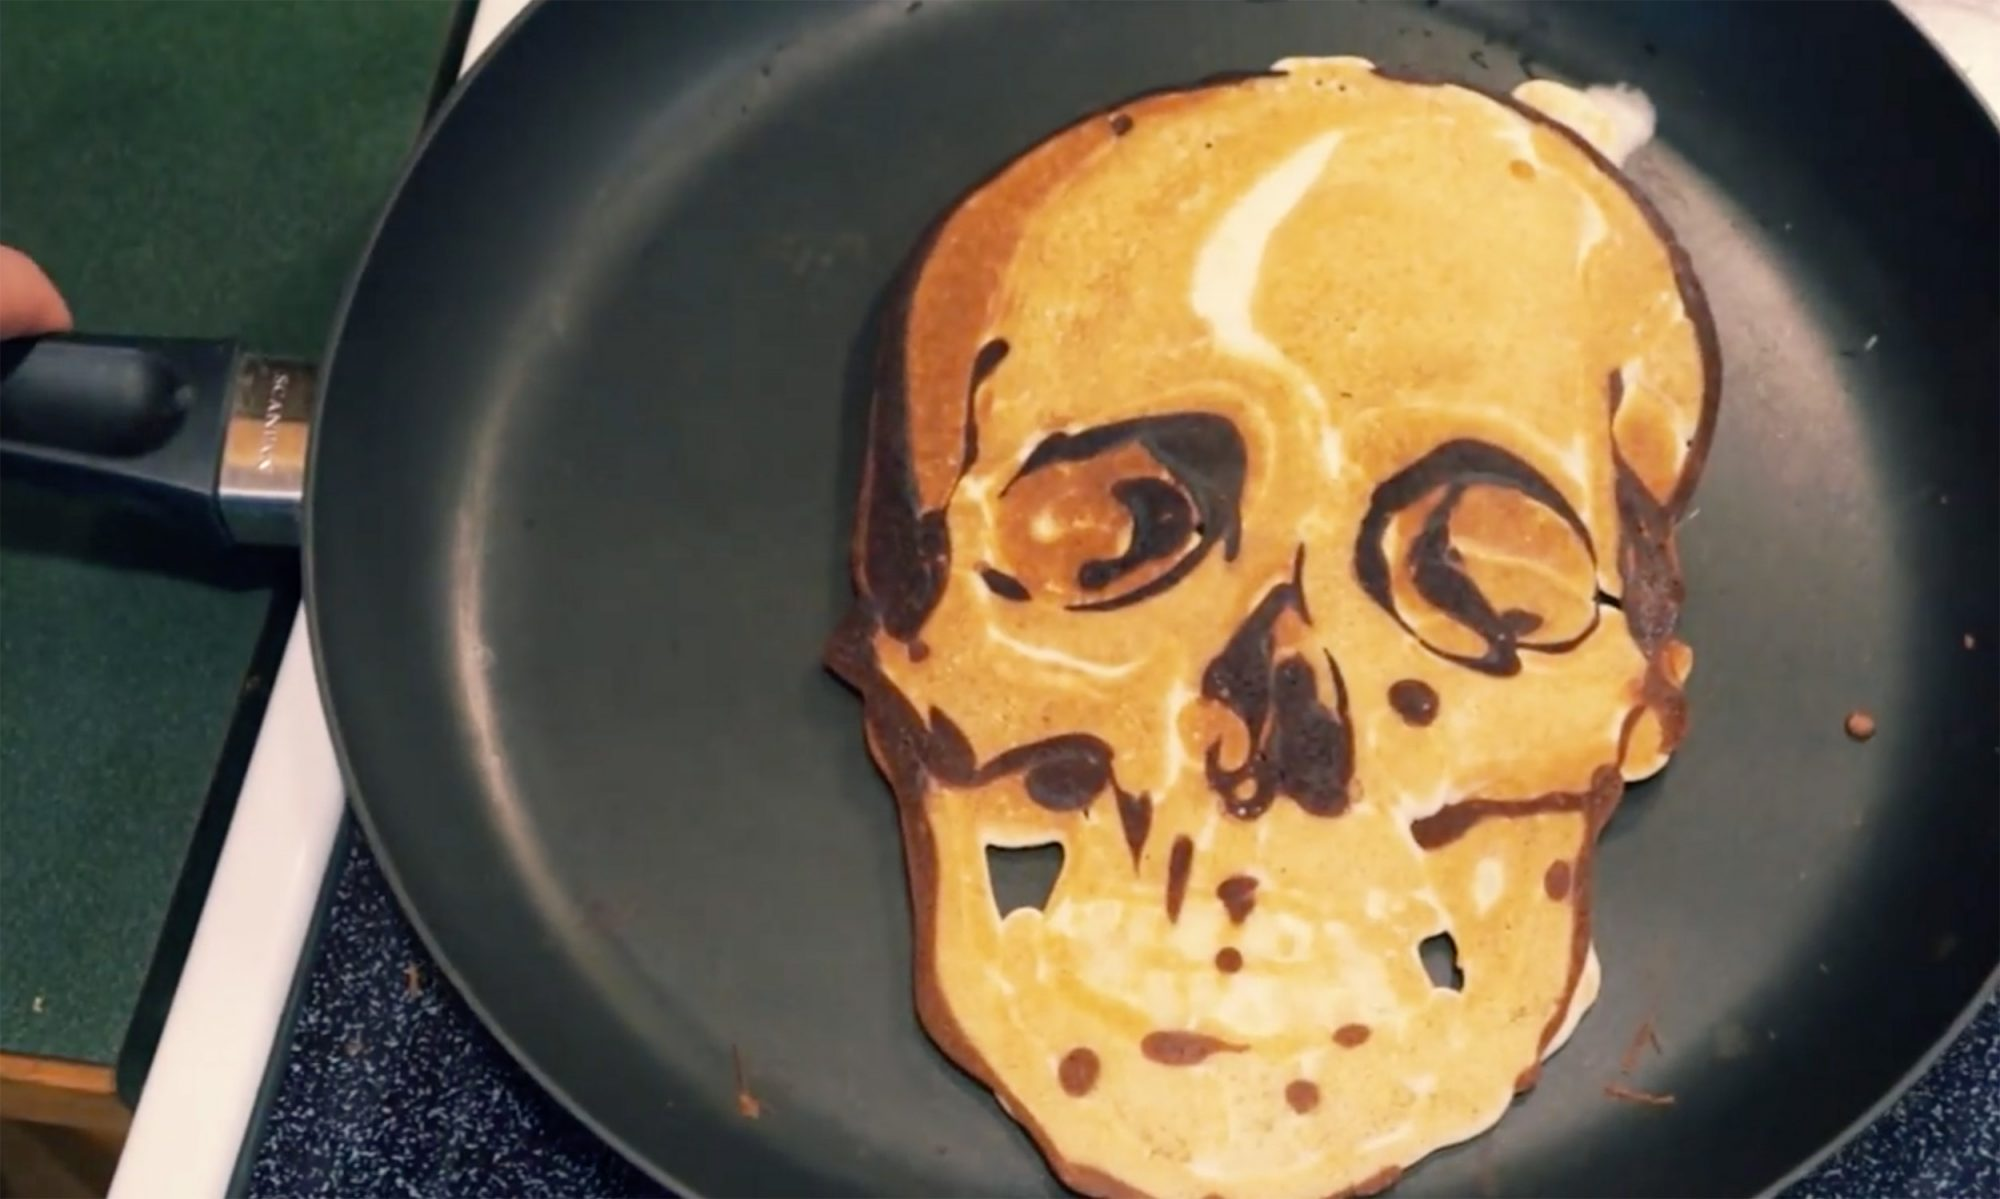 EC: This Pancake Artist Isn't Making Your Parents' Cartoon Pancakes